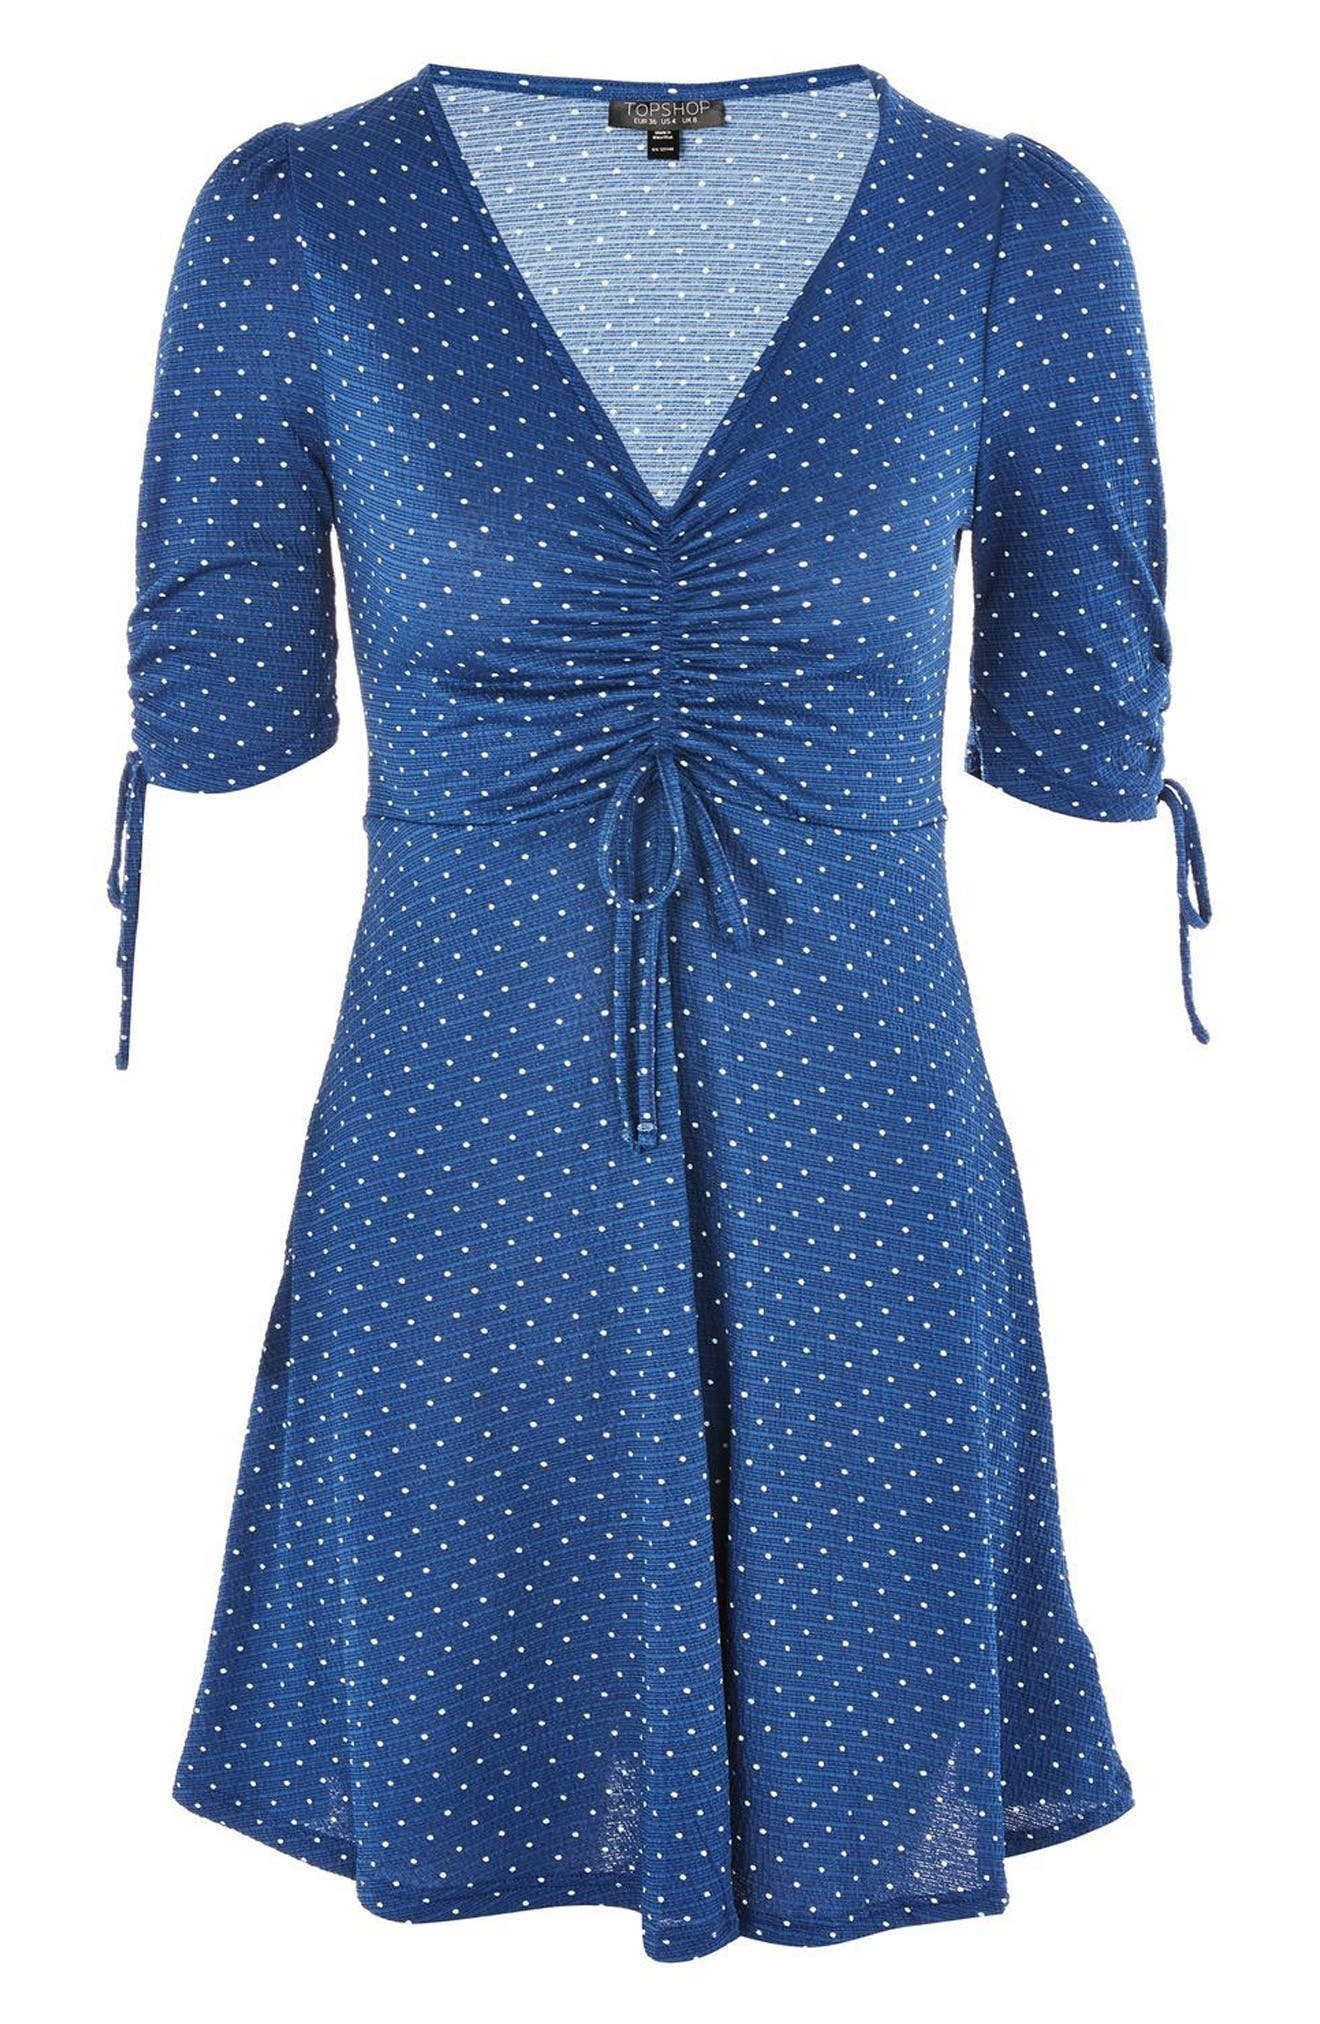 Polka Dot Tea Dress,                             Alternate thumbnail 3, color,                             Navy Blue Multi